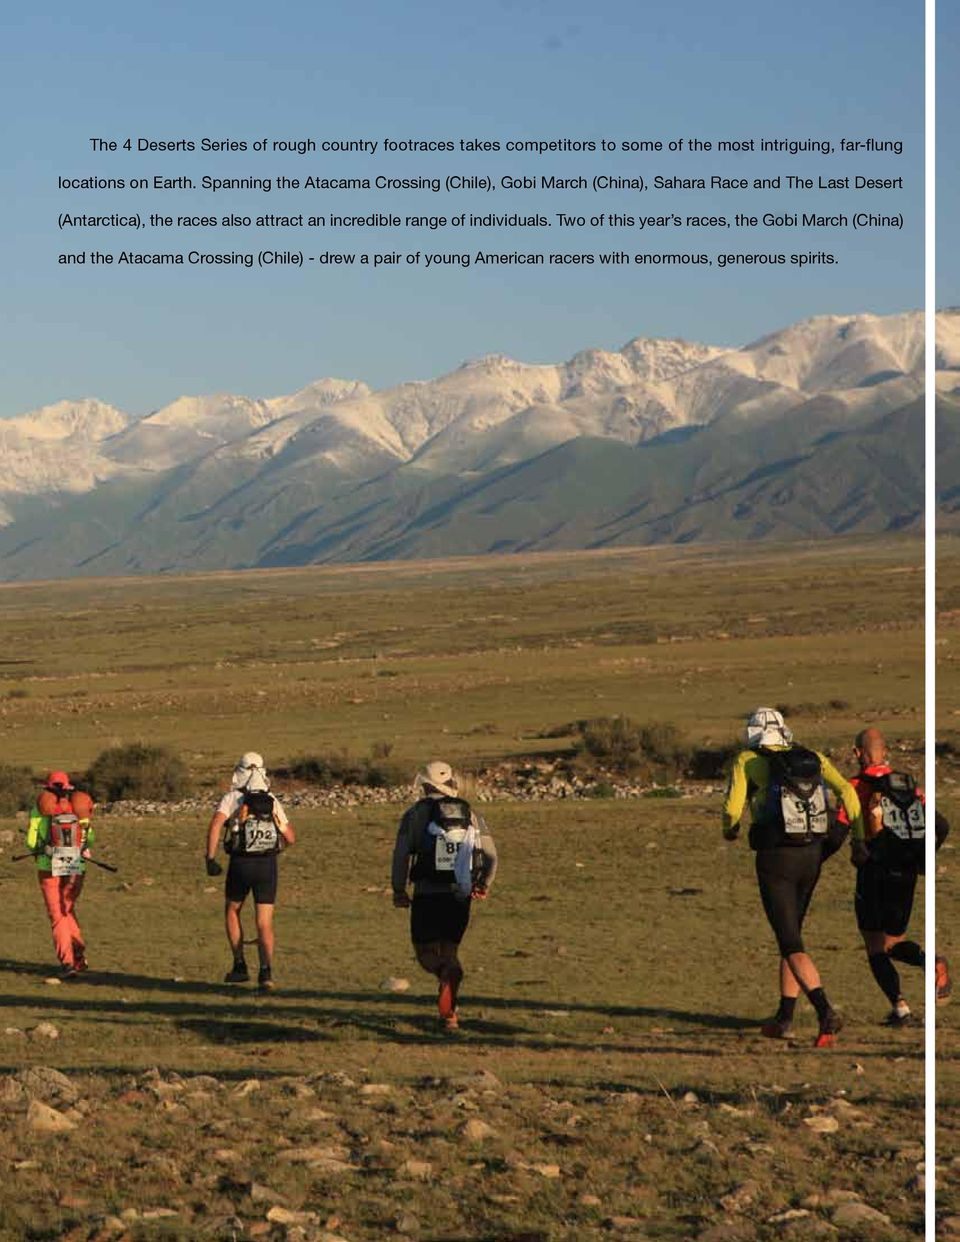 Spanning the Atacama Crossing (Chile), Gobi March (China), Sahara Race and The Last Desert (Antarctica), the races also